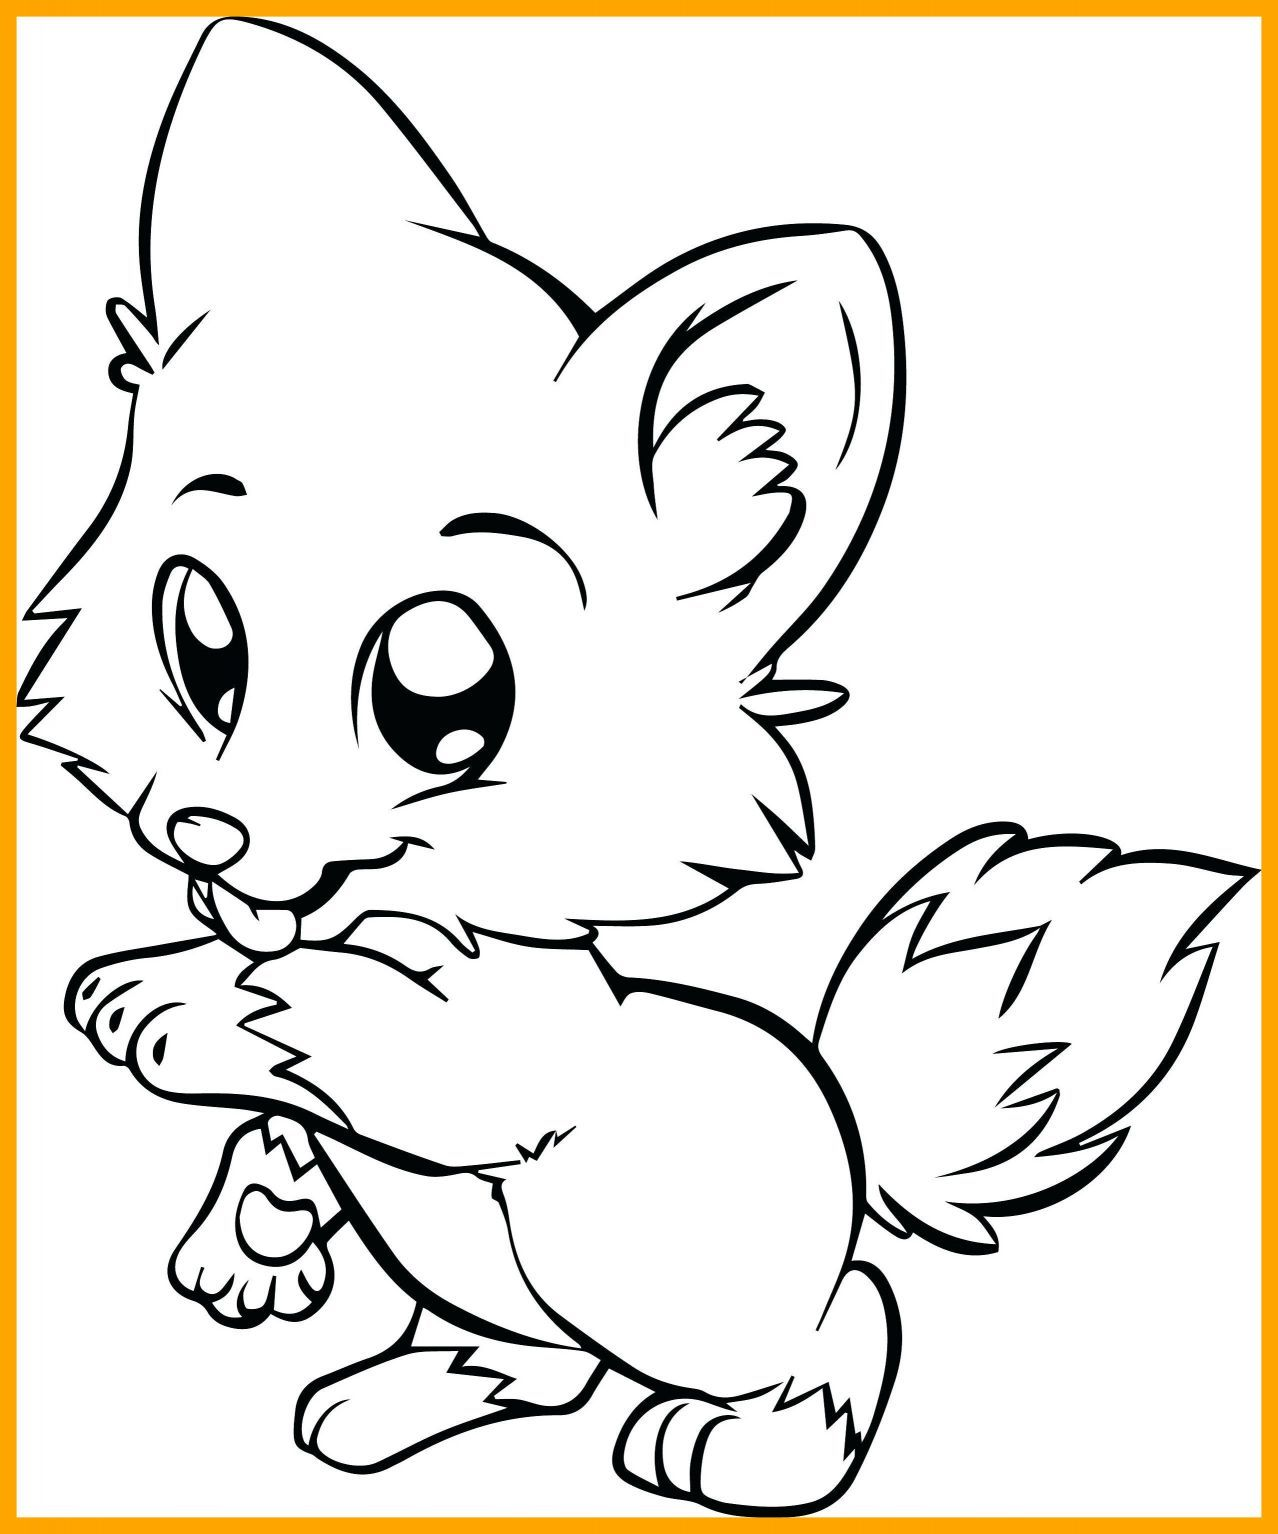 1278x1534 Amazing Quickly Cute With Big Eyes Coloring Pages Eyed Animal Pig